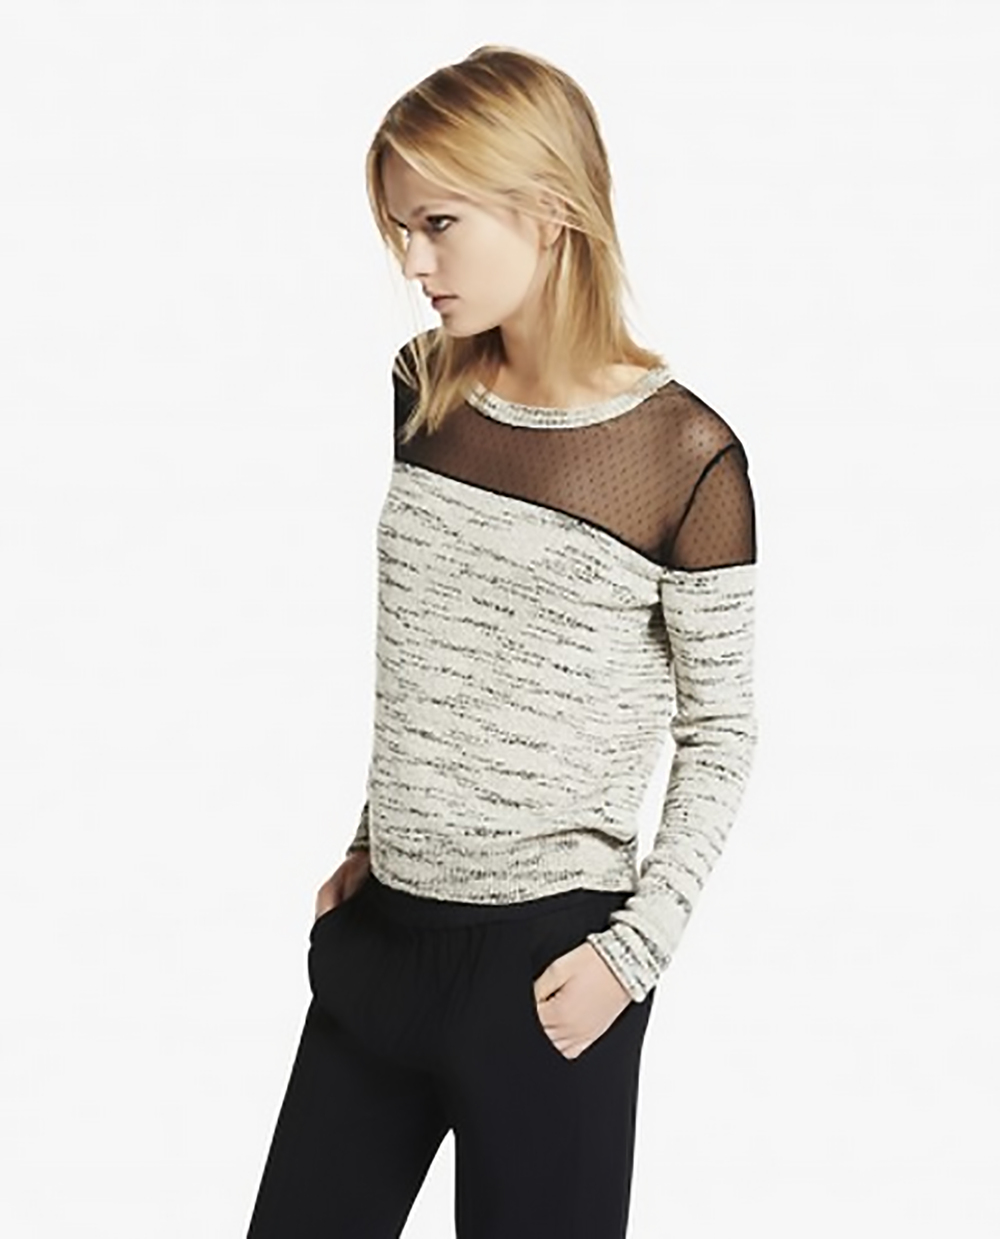 the kooples marl jumper with dotted fabric inset see thru shoulders 1500.jpg